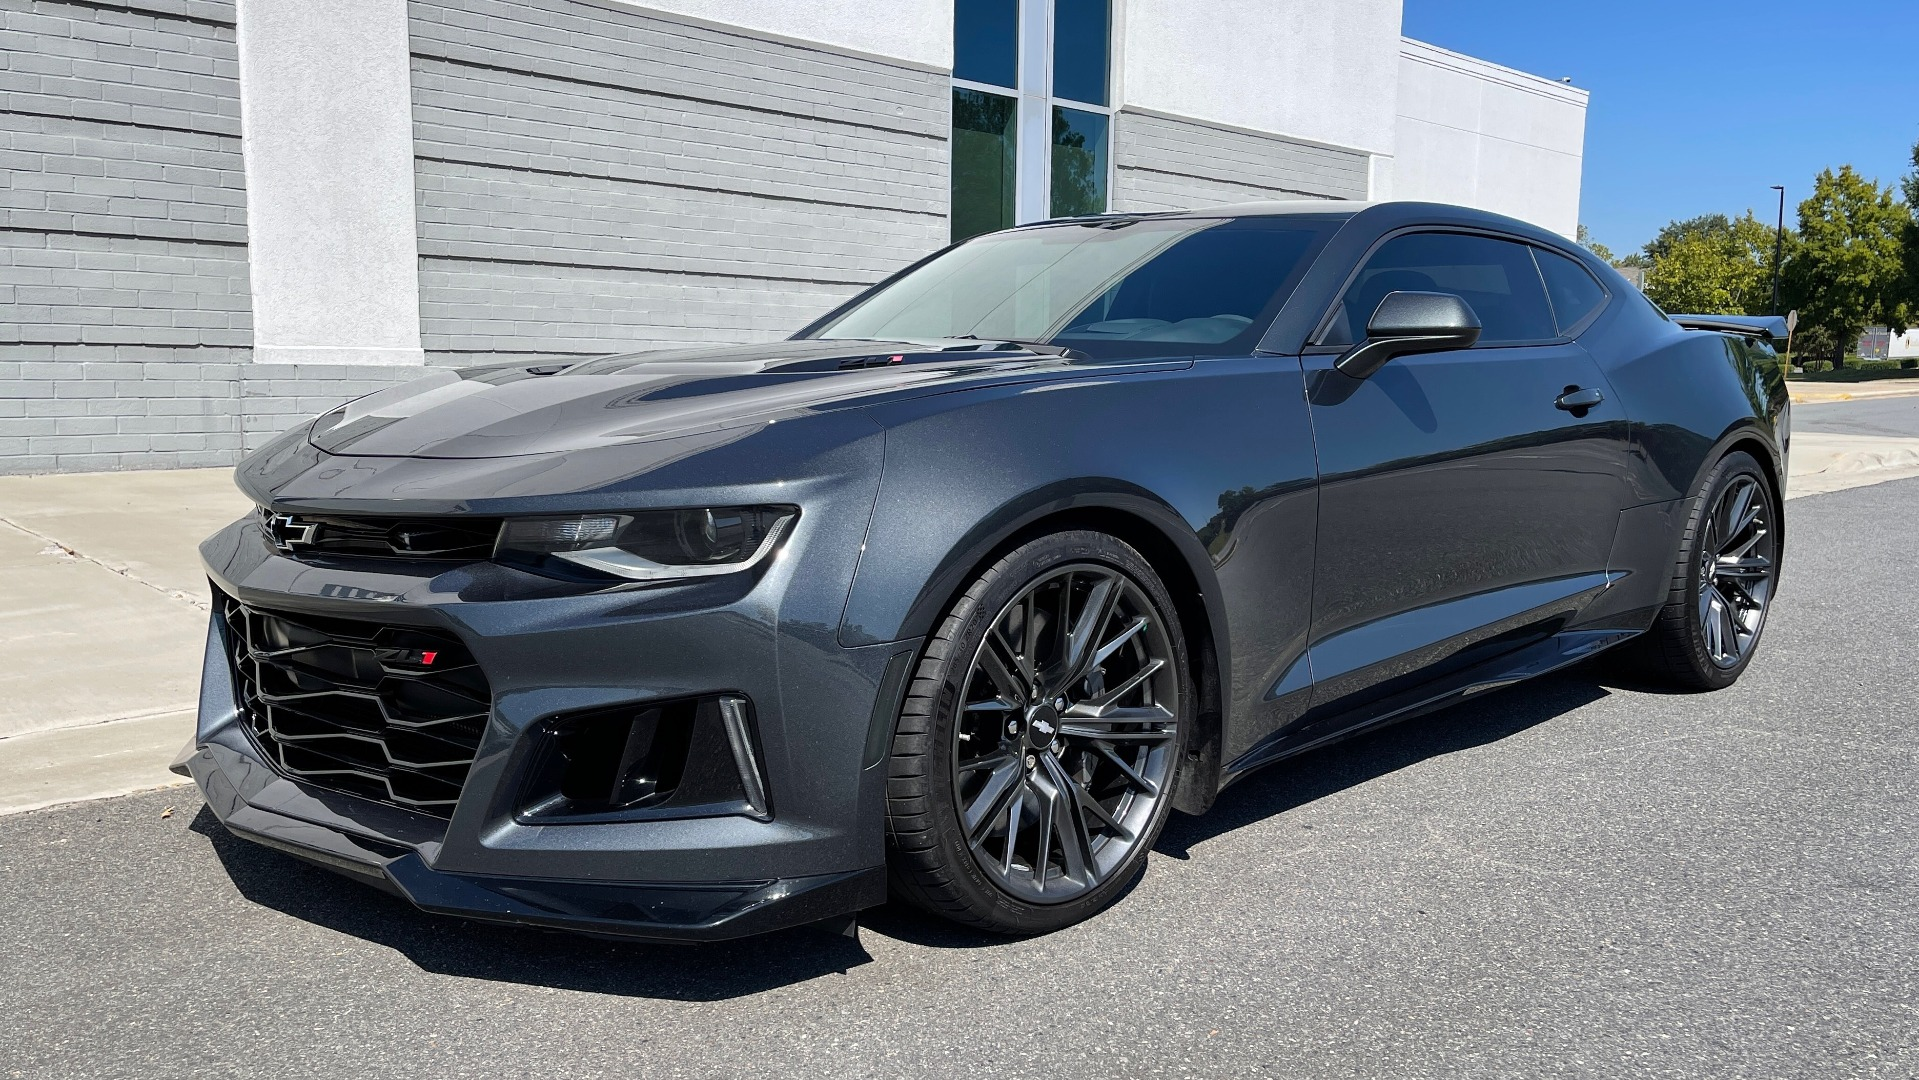 Used 2018 Chevrolet CAMARO ZL1 SUPERCHARGED COUPE 850HP / 10-SPD AUTO / NAV / BOSE / REARVIEW for sale $59,995 at Formula Imports in Charlotte NC 28227 3